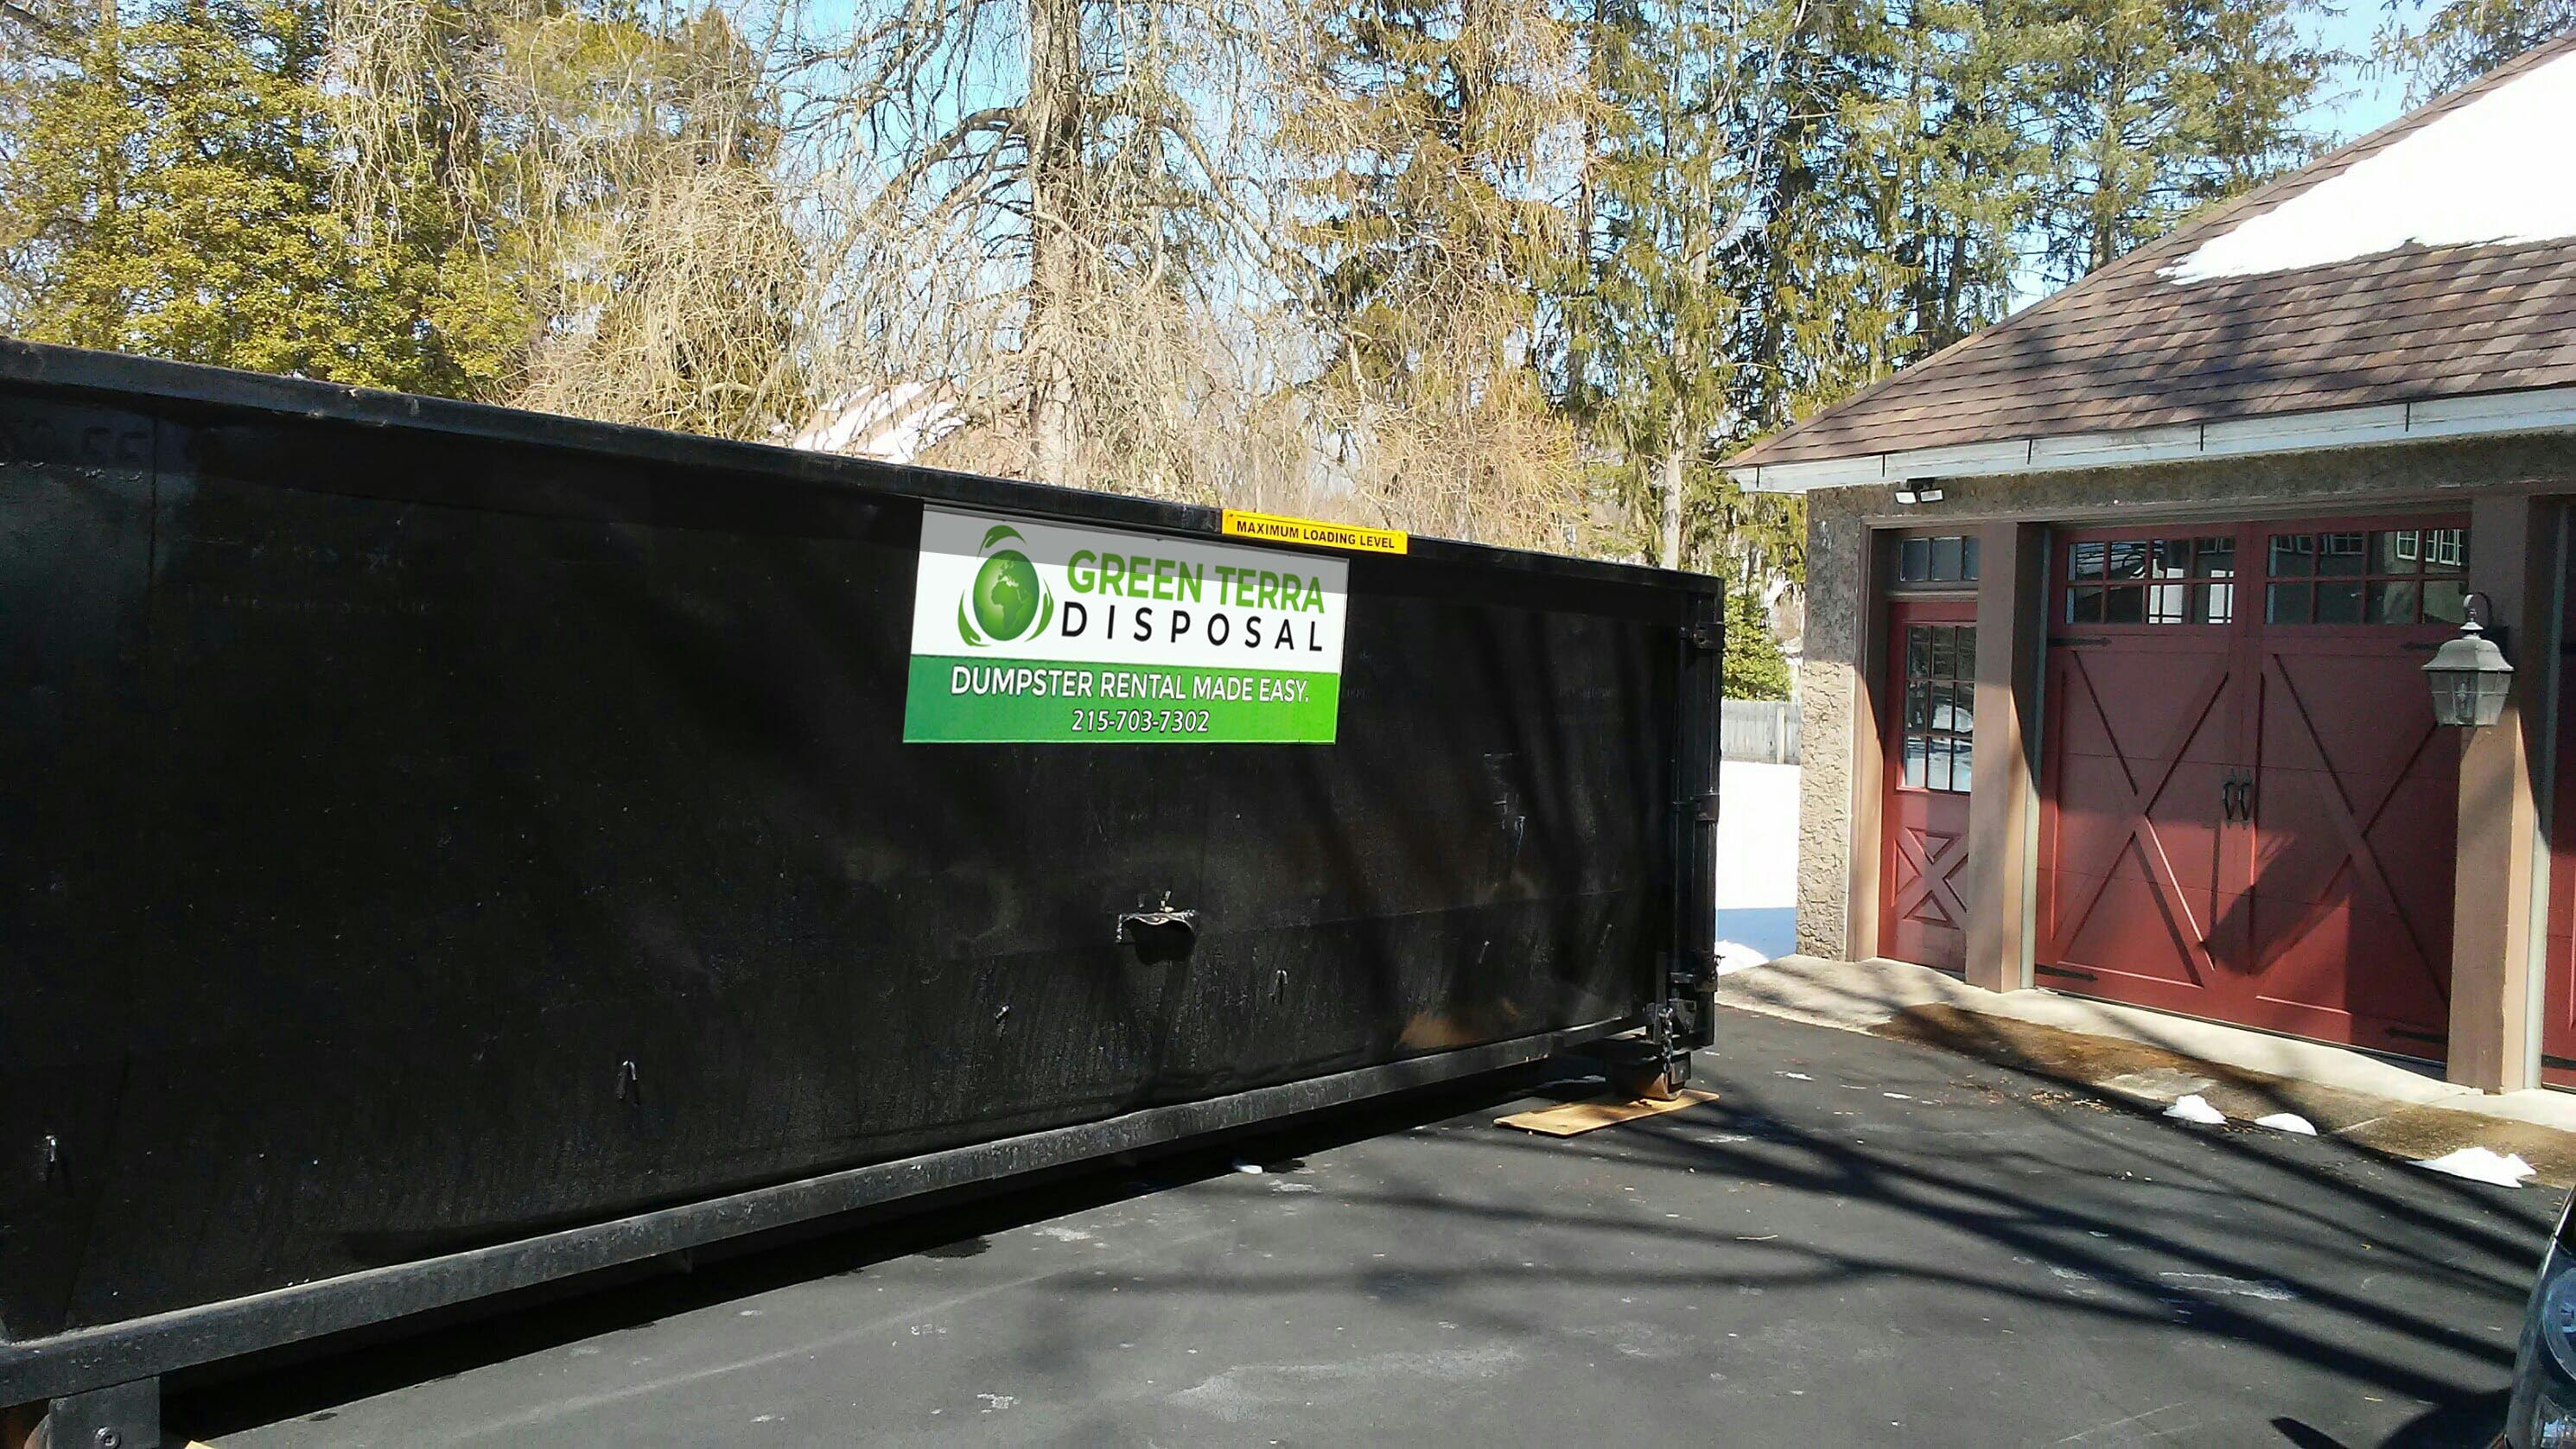 Dumpster Rental Service, Commercial Roll-Off Dumpsters